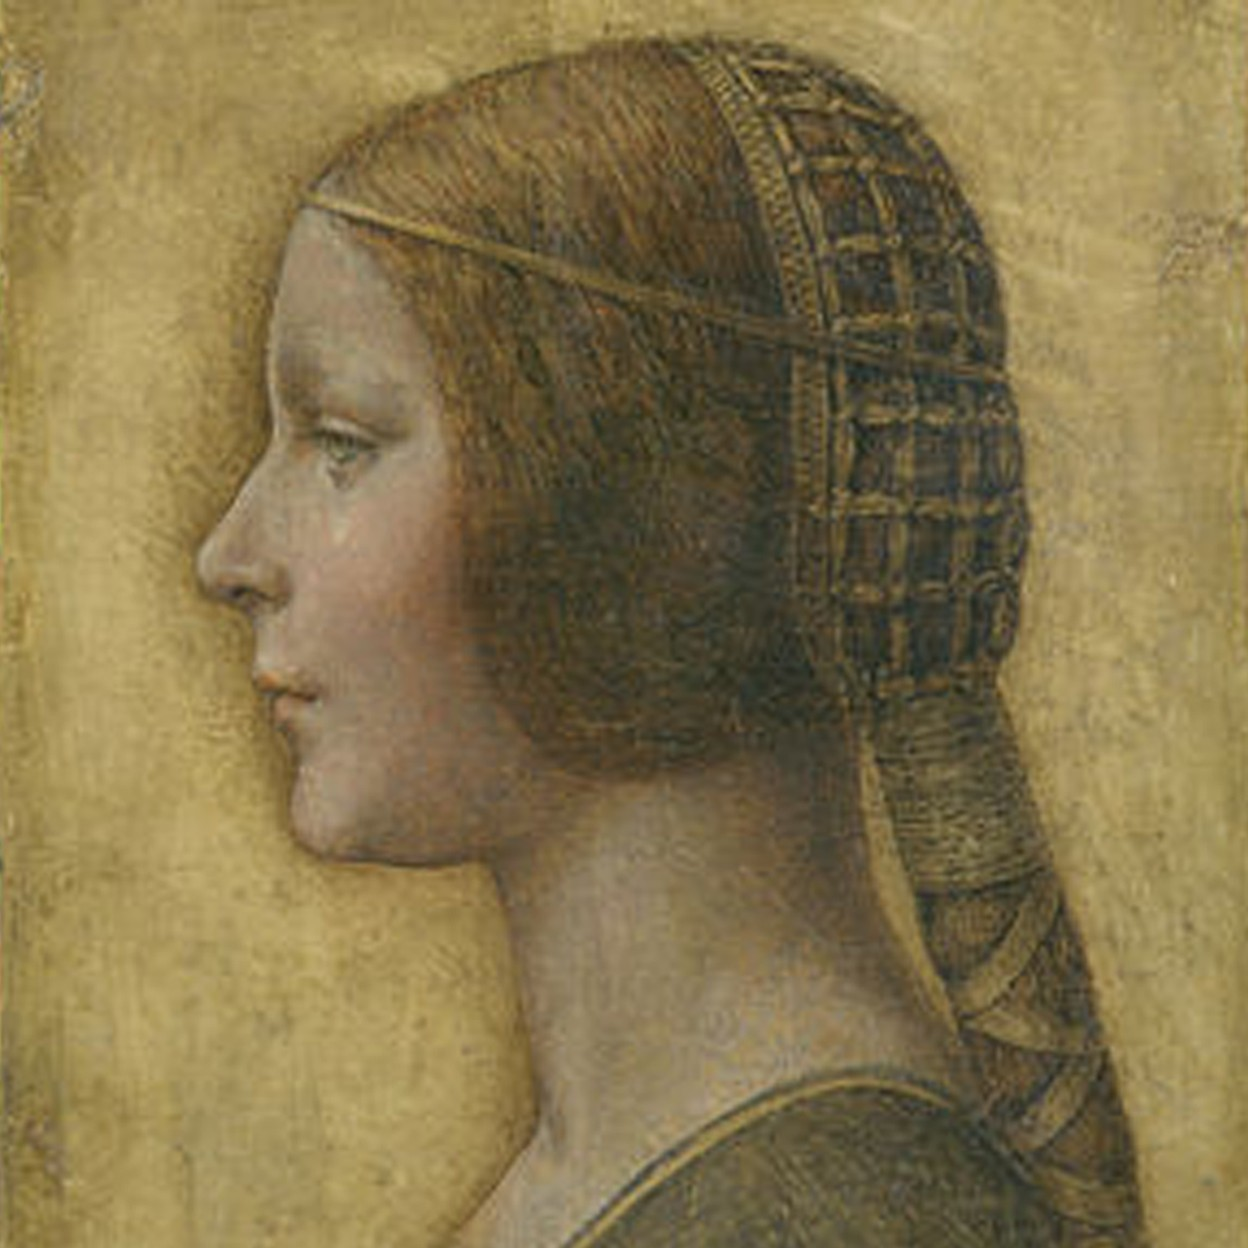 Fingerprints, Forgeries, Forensic Art History and the Art Market: Leonardo's La Bella Principessa